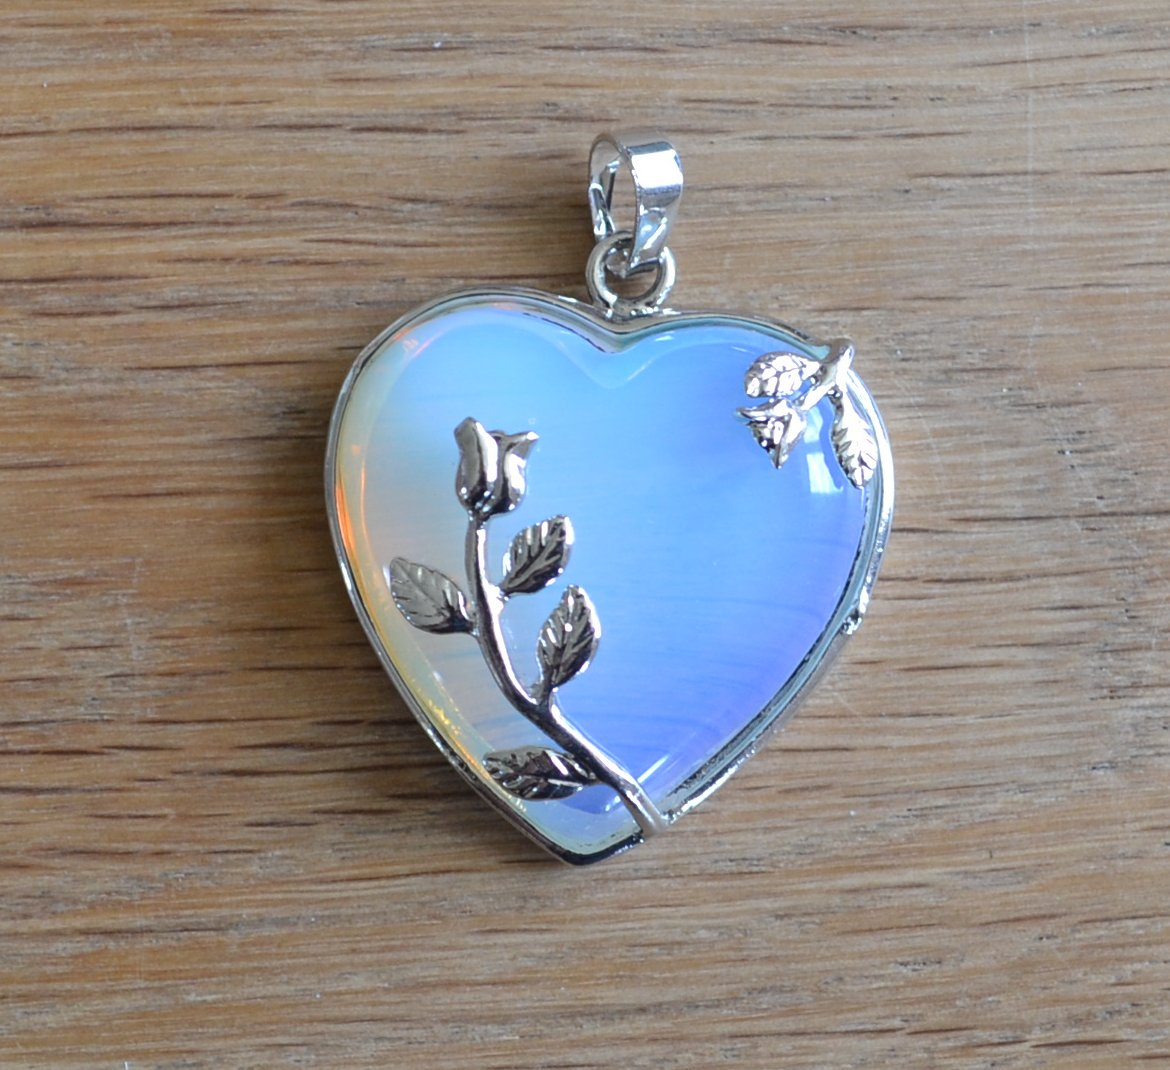 pendant cavern category goddess pendants archives product jewellery wholesale silver large opalite